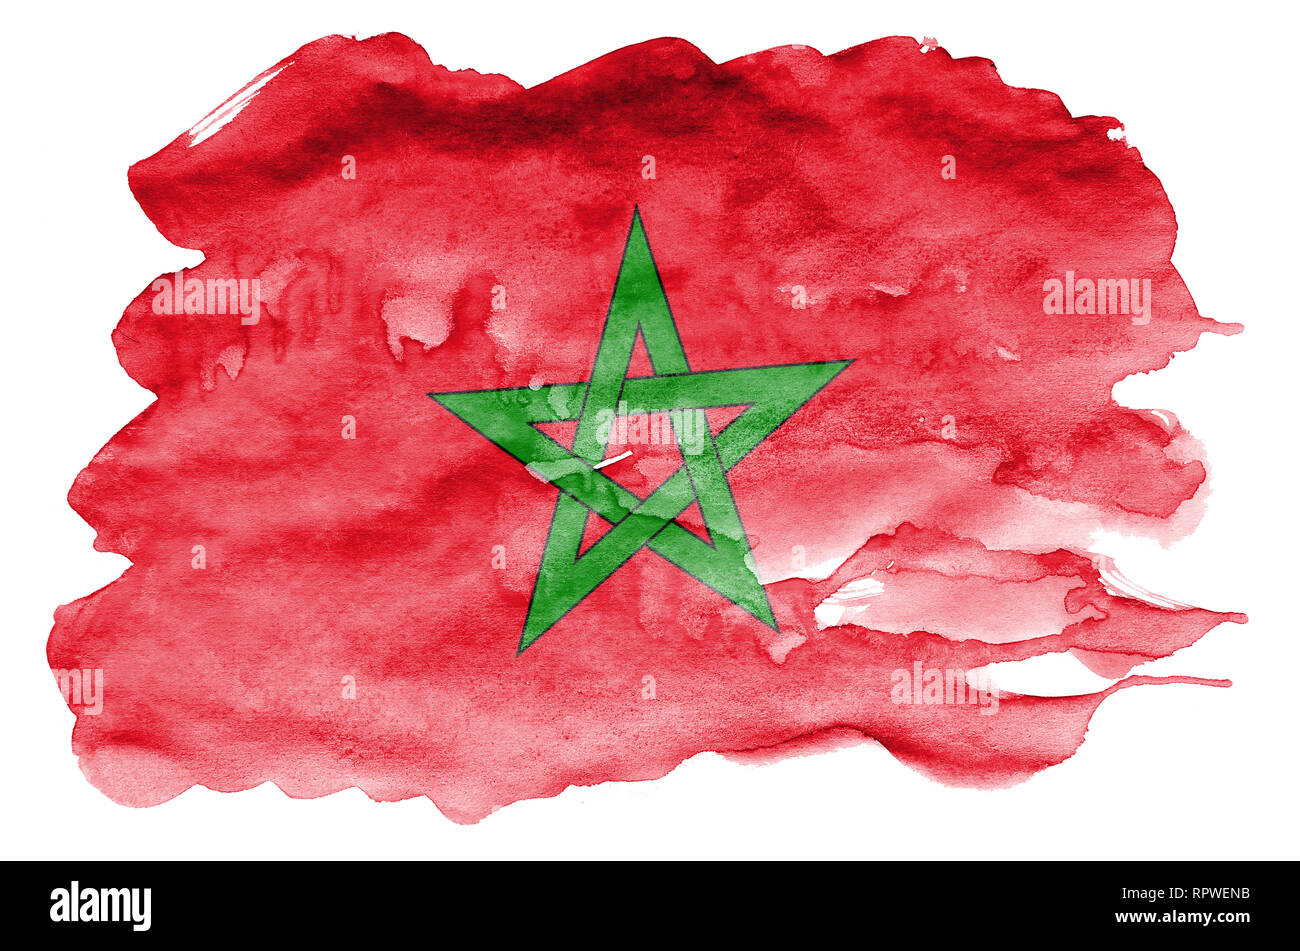 Morocco flag  is depicted in liquid watercolor style isolated on white background. Careless paint shading with image of national flag. Independence Da - Stock Image